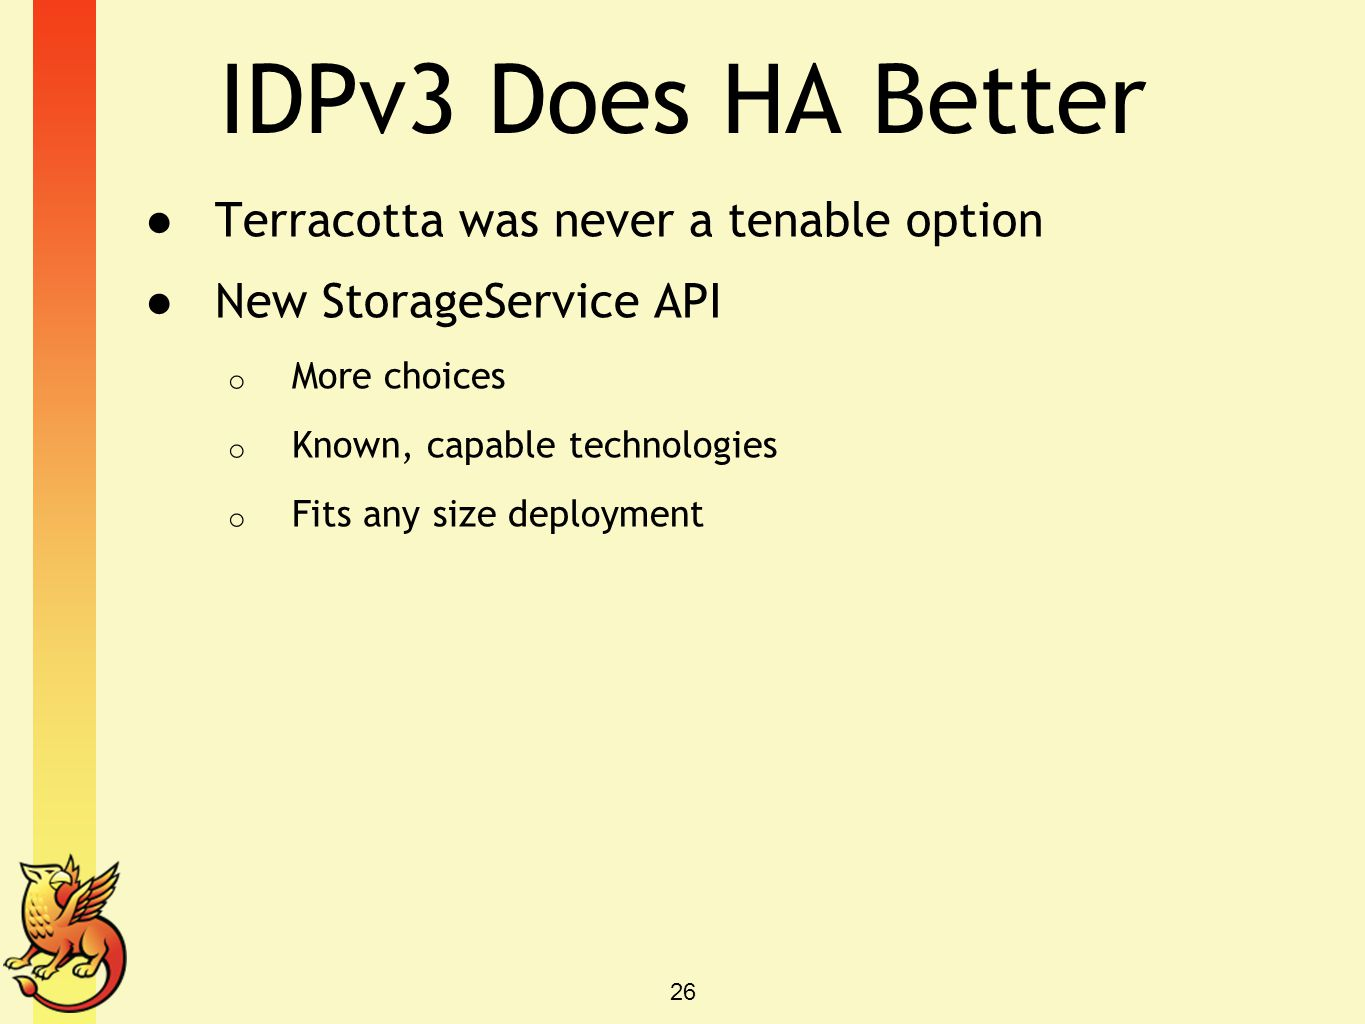 IDPv3 Does HA Better Terracotta was never a tenable option